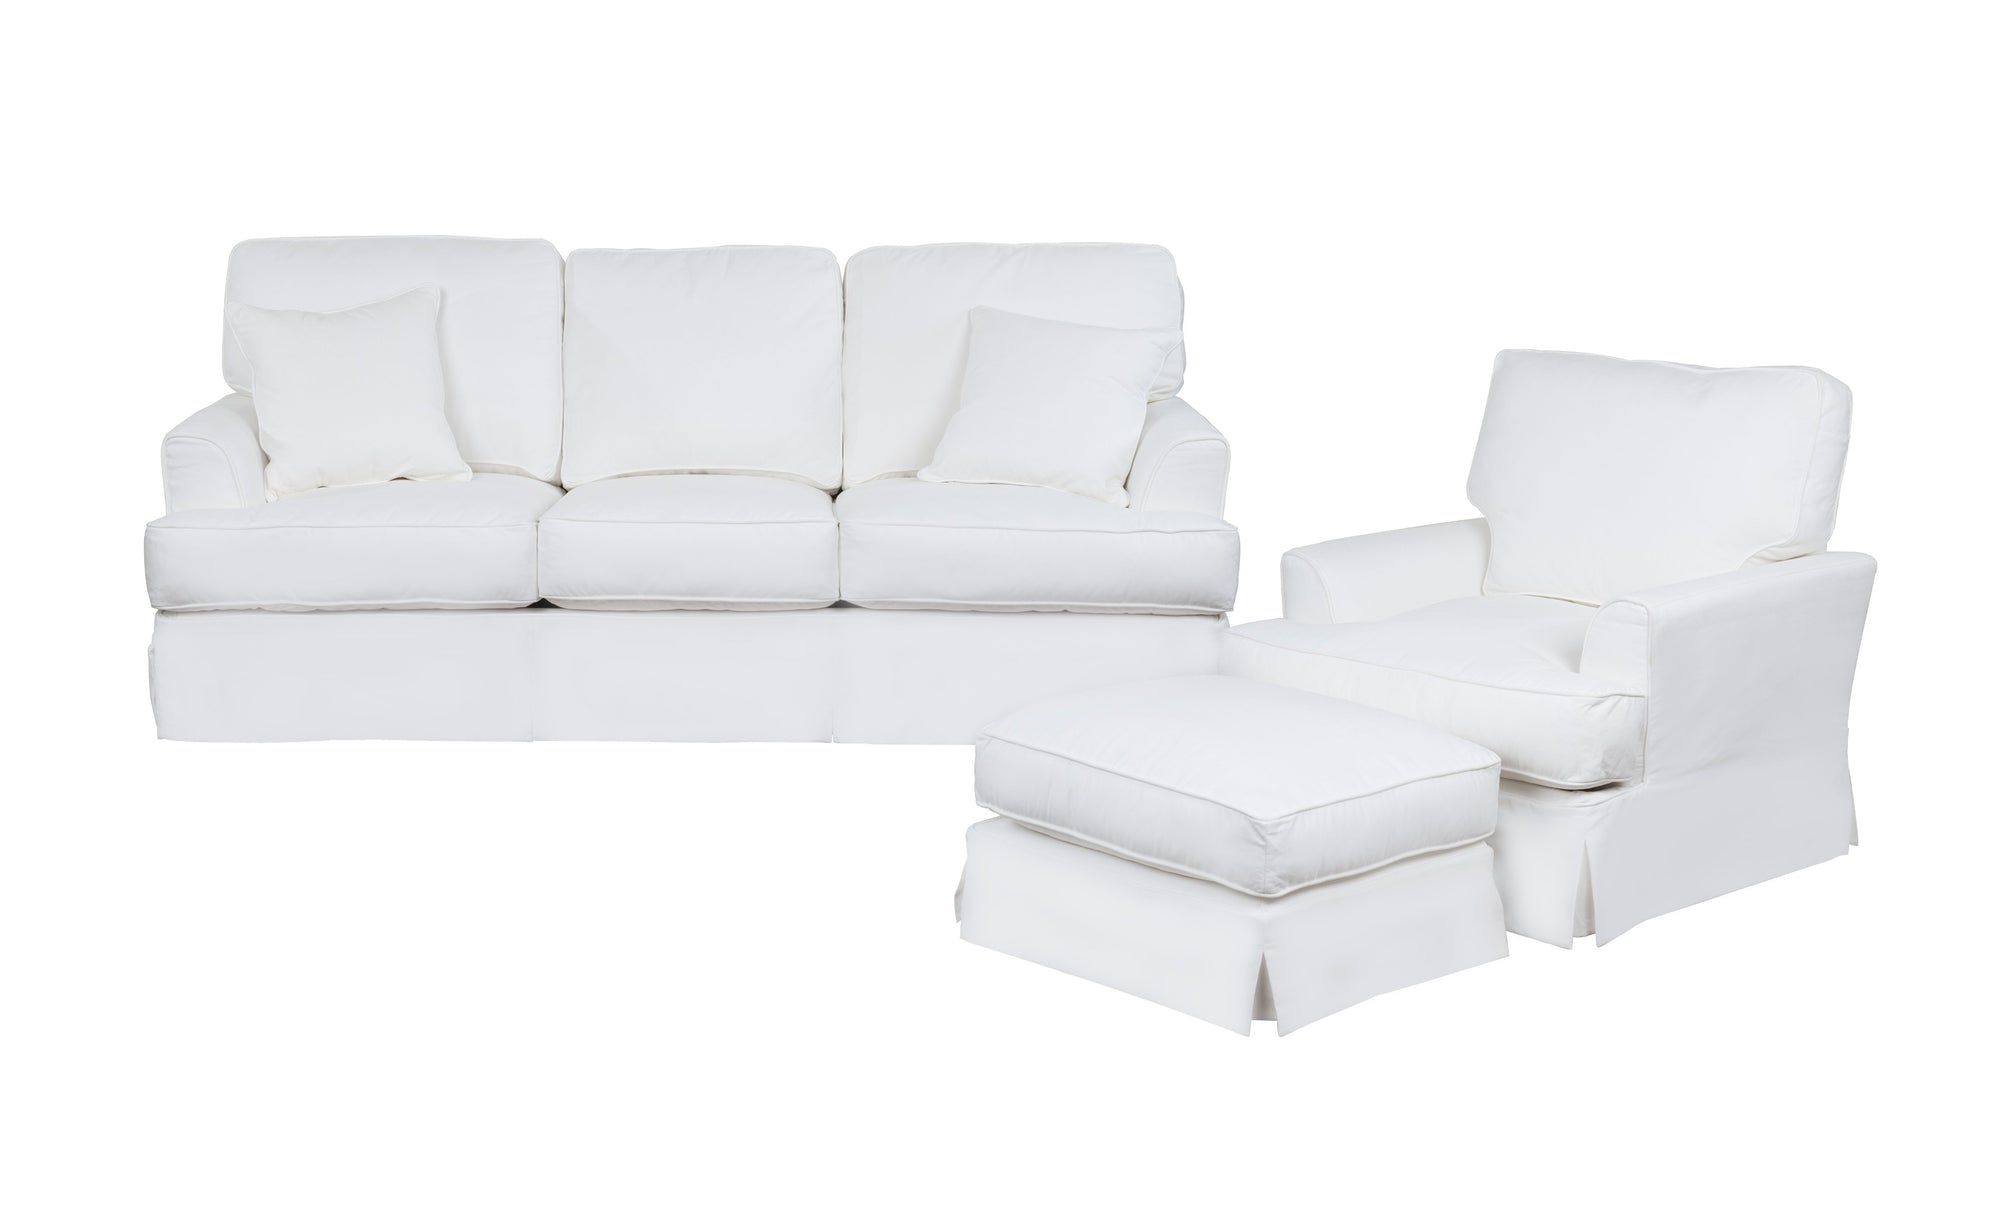 Sunset Trading Ariana 3 Piece Slipcovered Living Room Set by Sunset Trading - HomeKingz.com - Online furniture shop with the best prices & premium customer support!